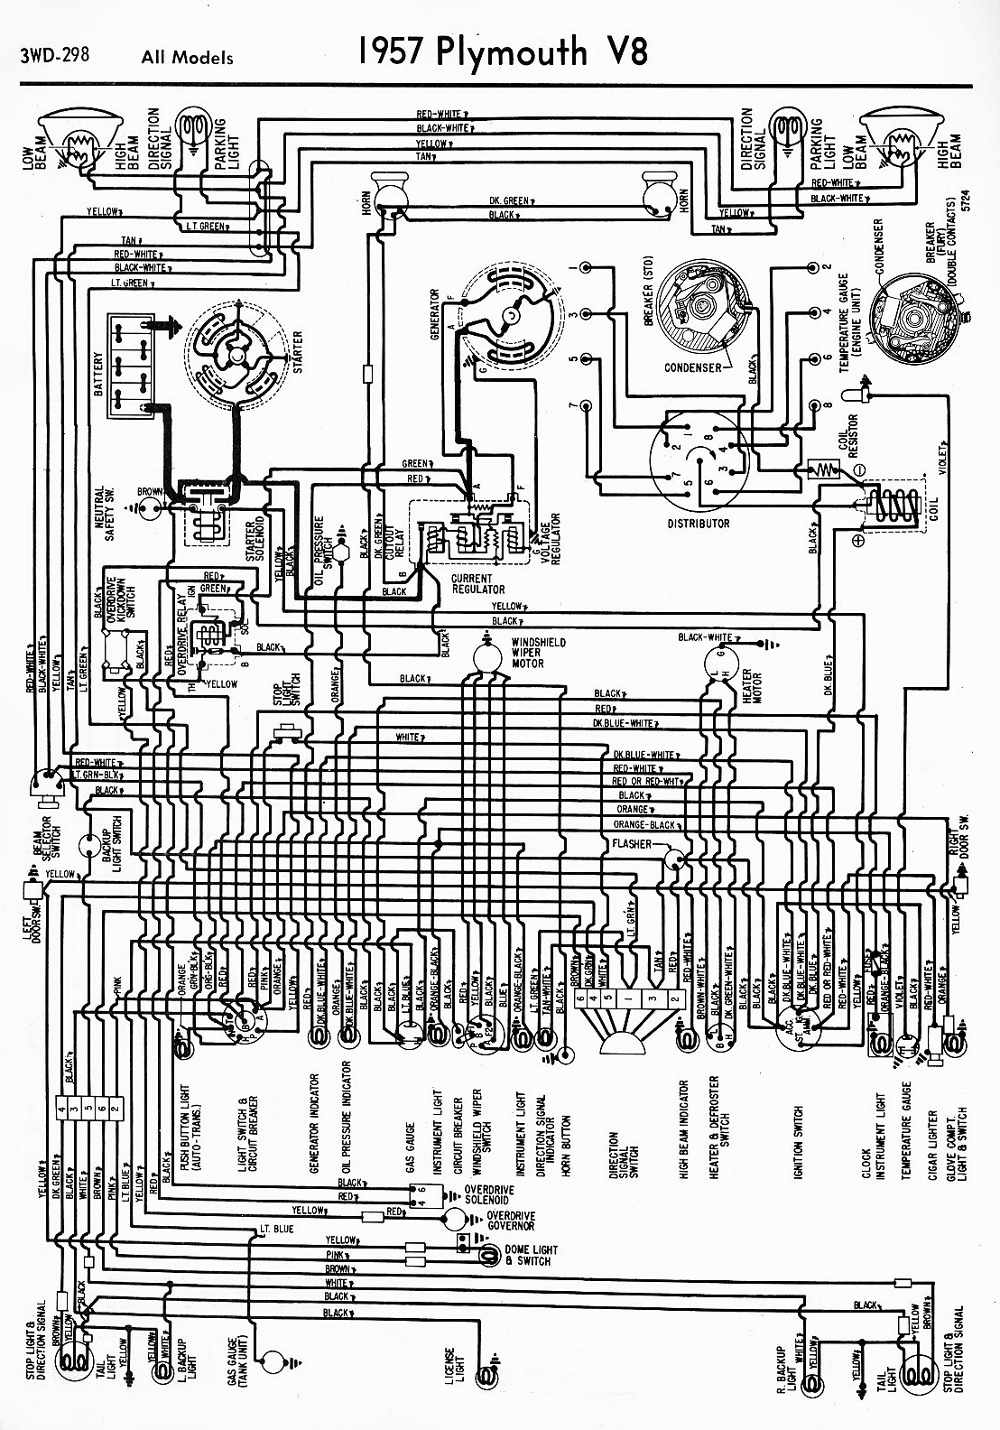 Plymouth Car Pdf Manual Wiring Diagram Fault Codes Dtc